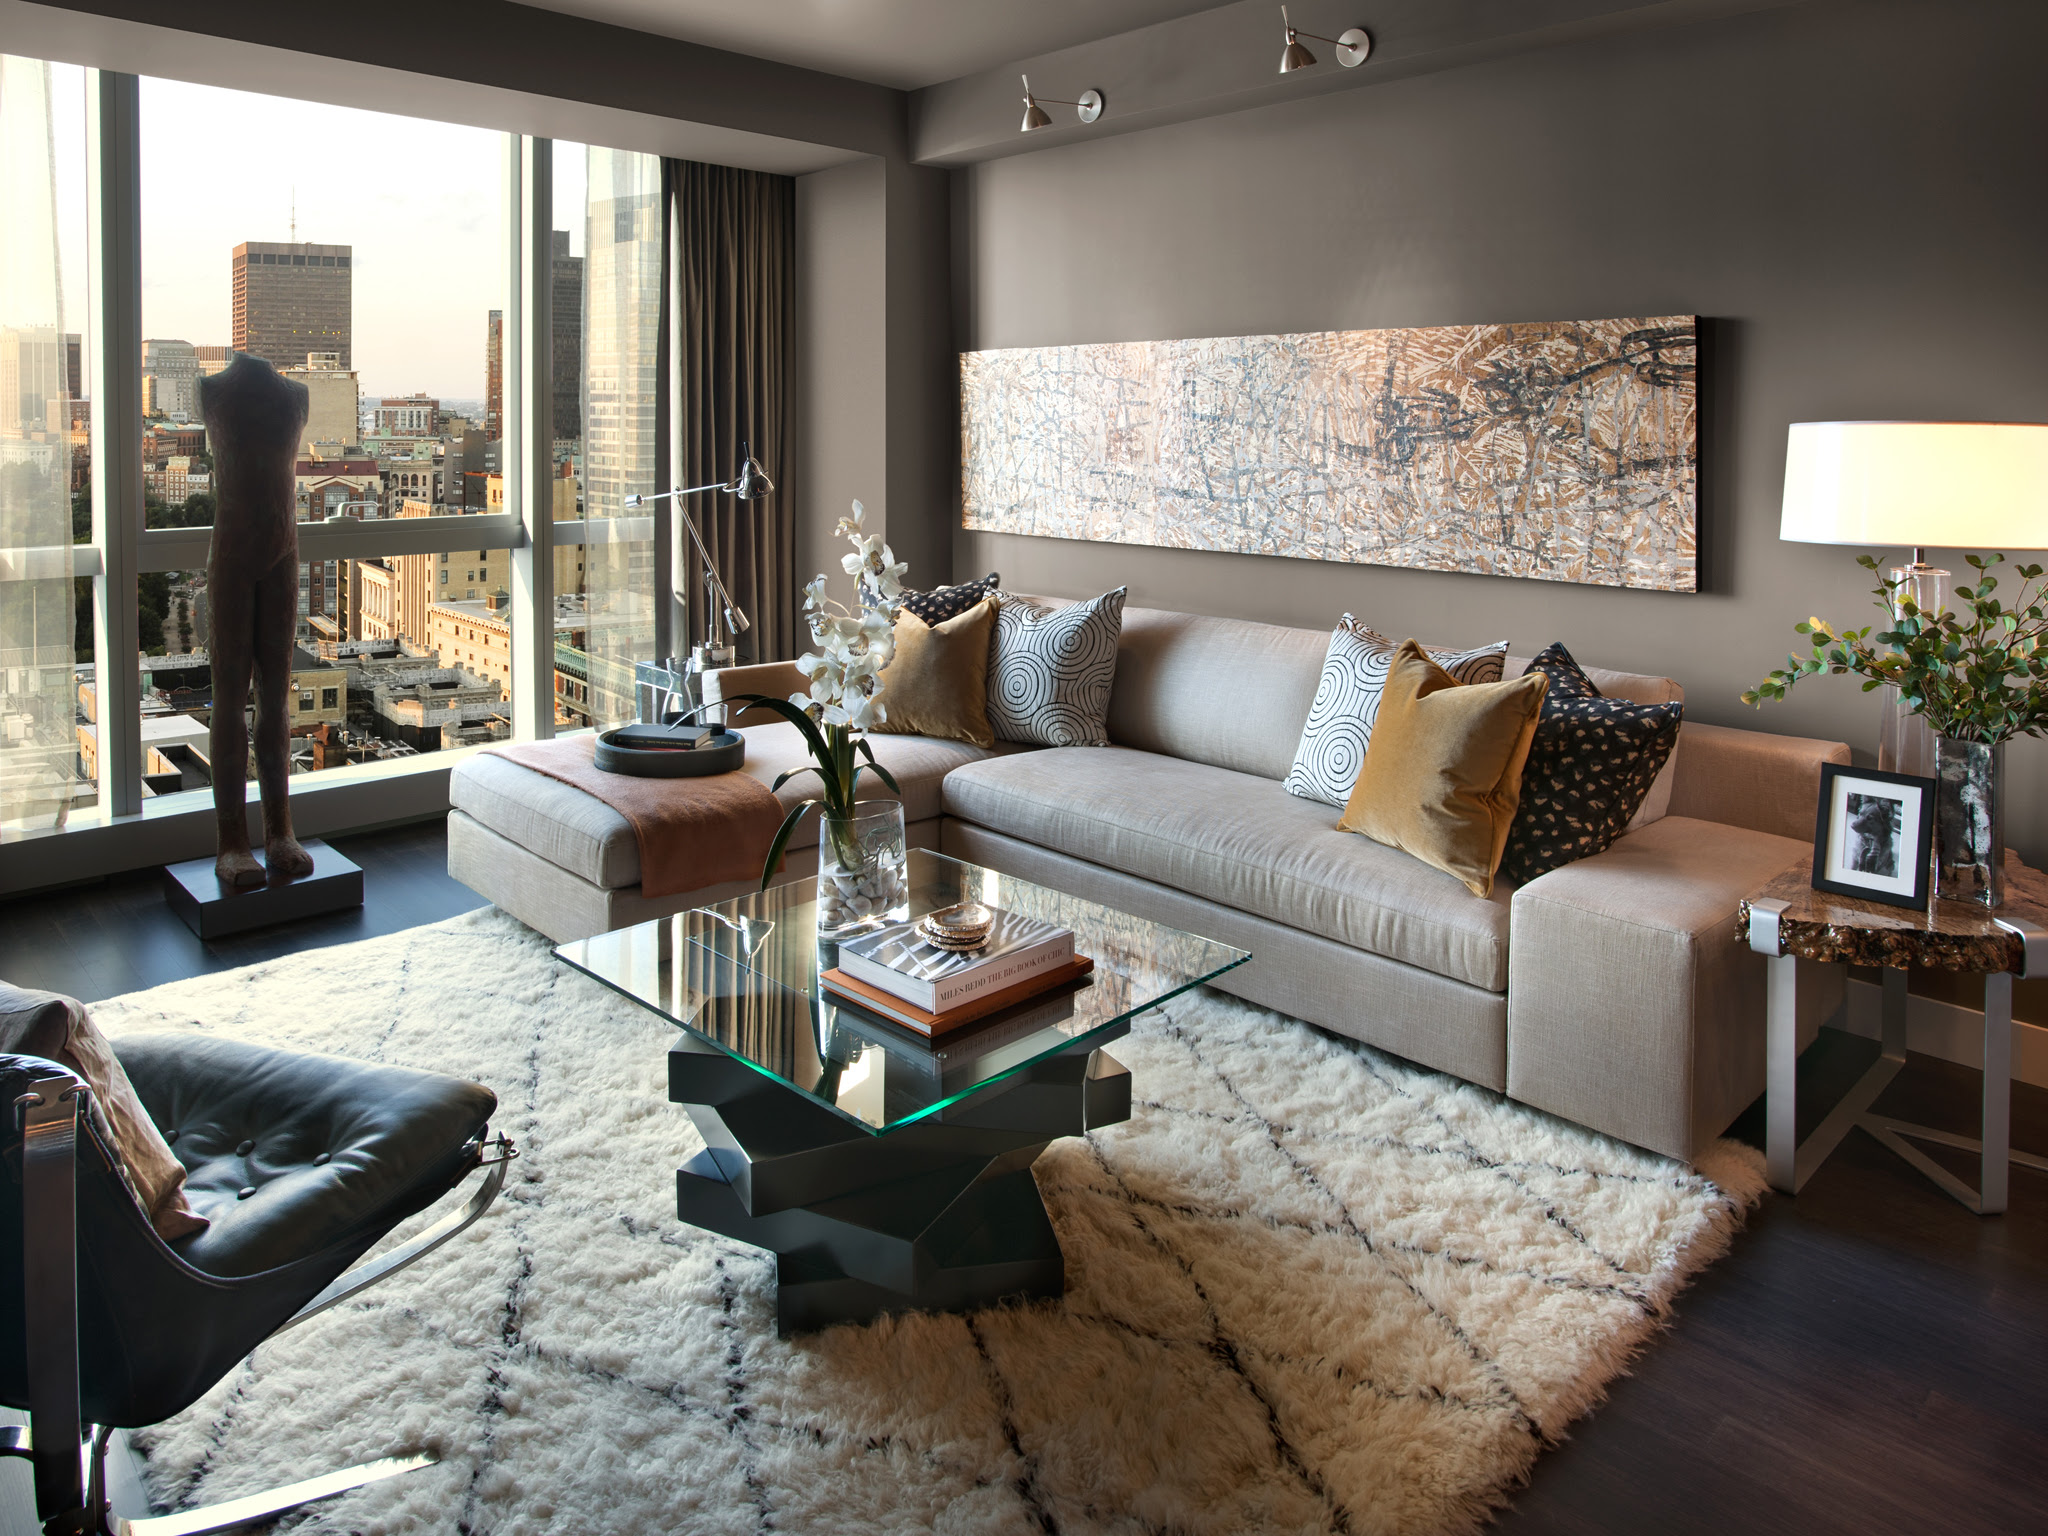 Fancy Hgtv Images Of Living Rooms Decorating Room Rustic Style